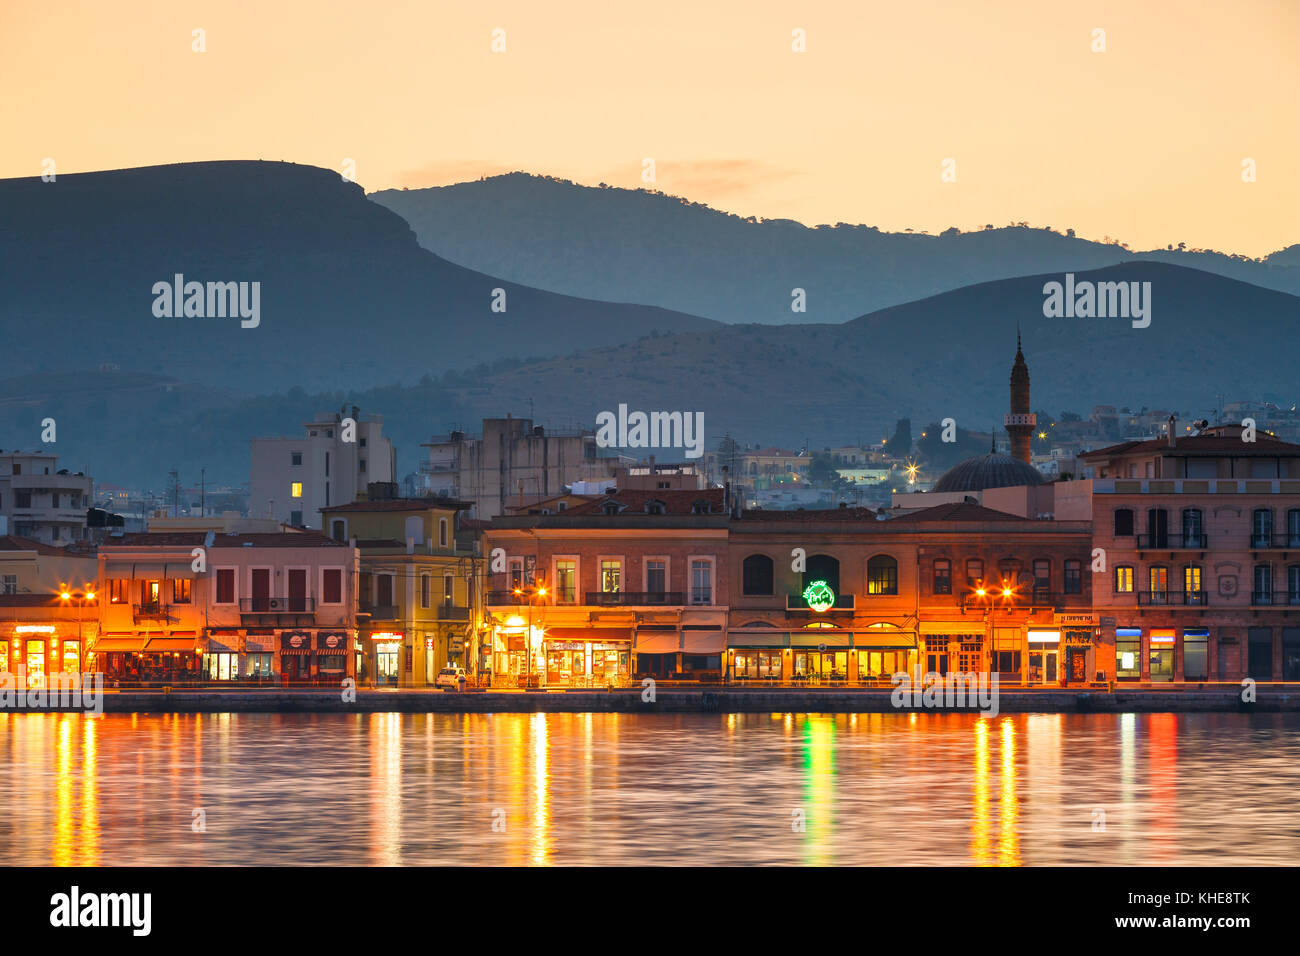 Chios town and its seafront as seen from the pier of the harbour. - Stock Image